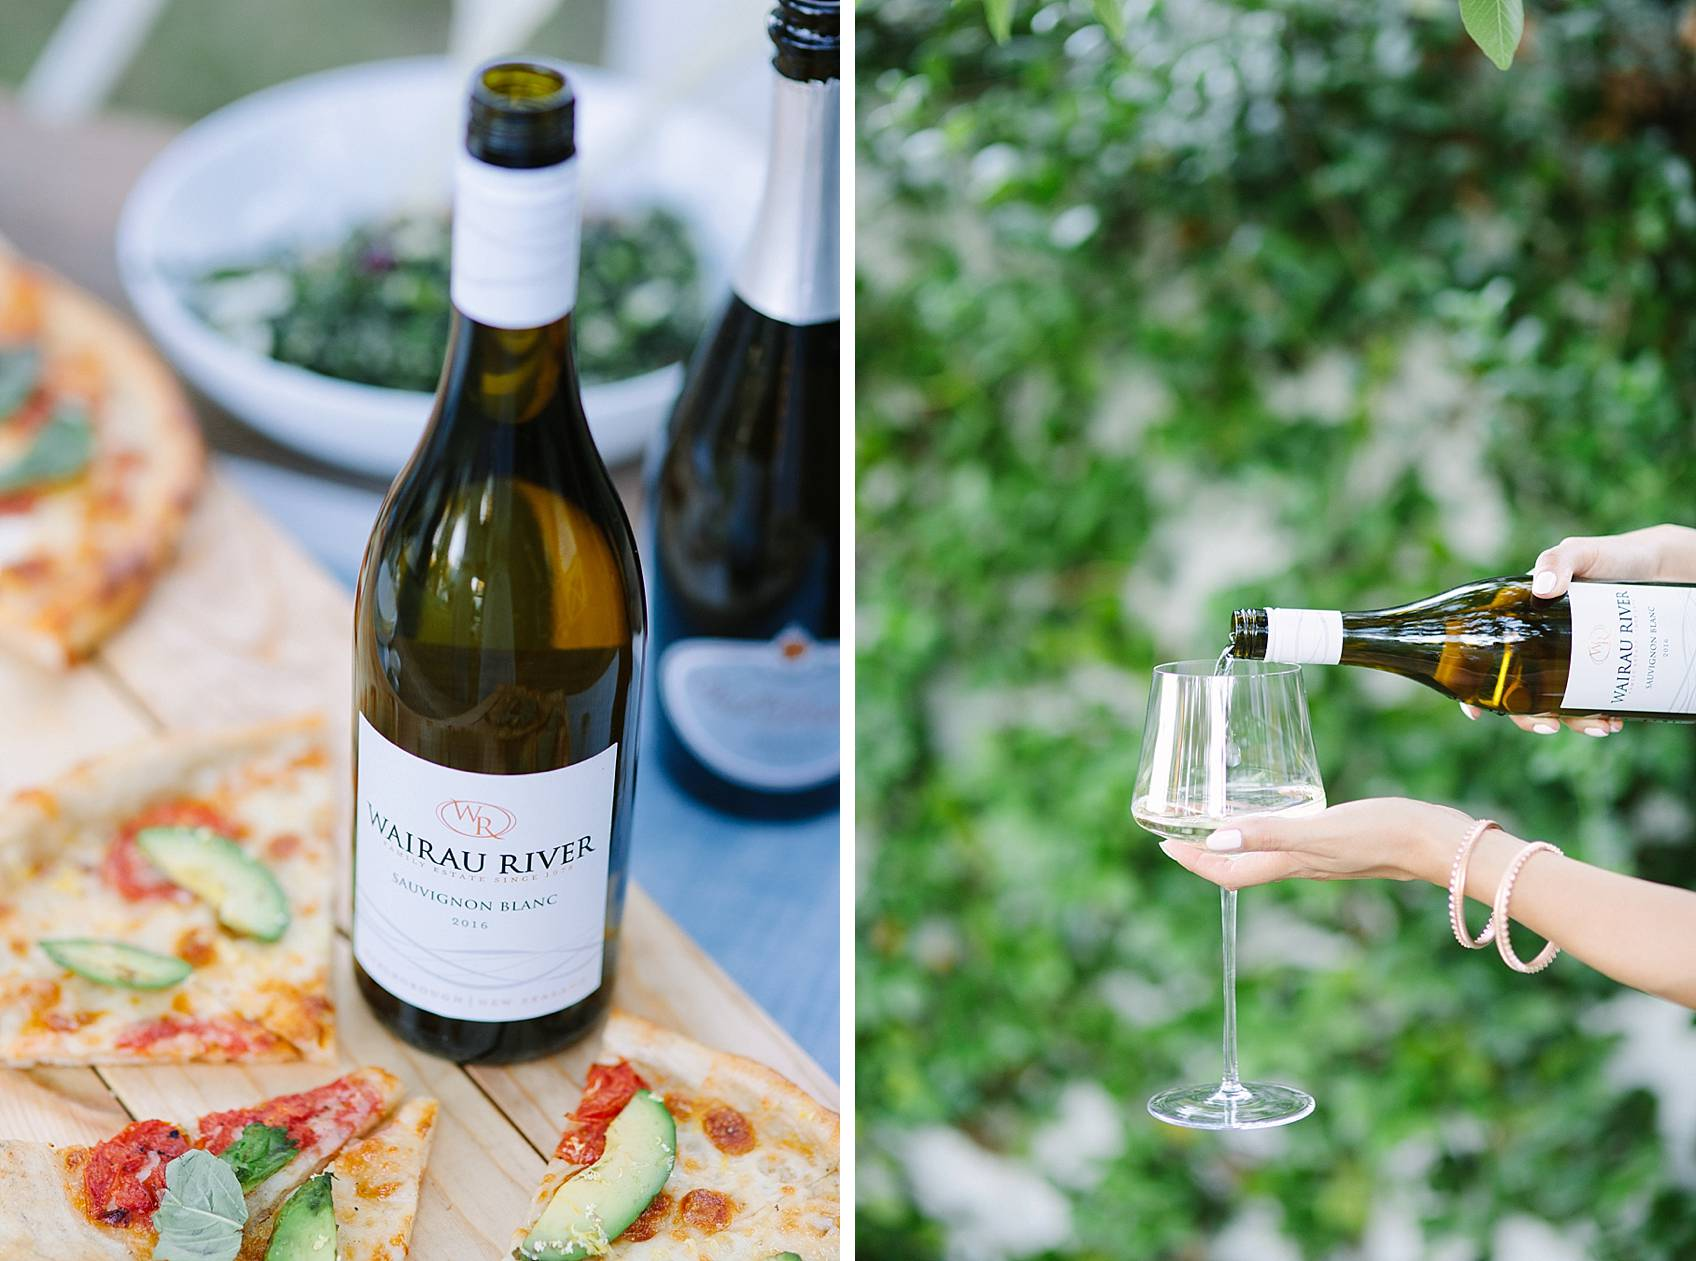 Avocado pizza paired with the Wairau River Sauvignon Blanc 2016 from Marlborough; New Zealand